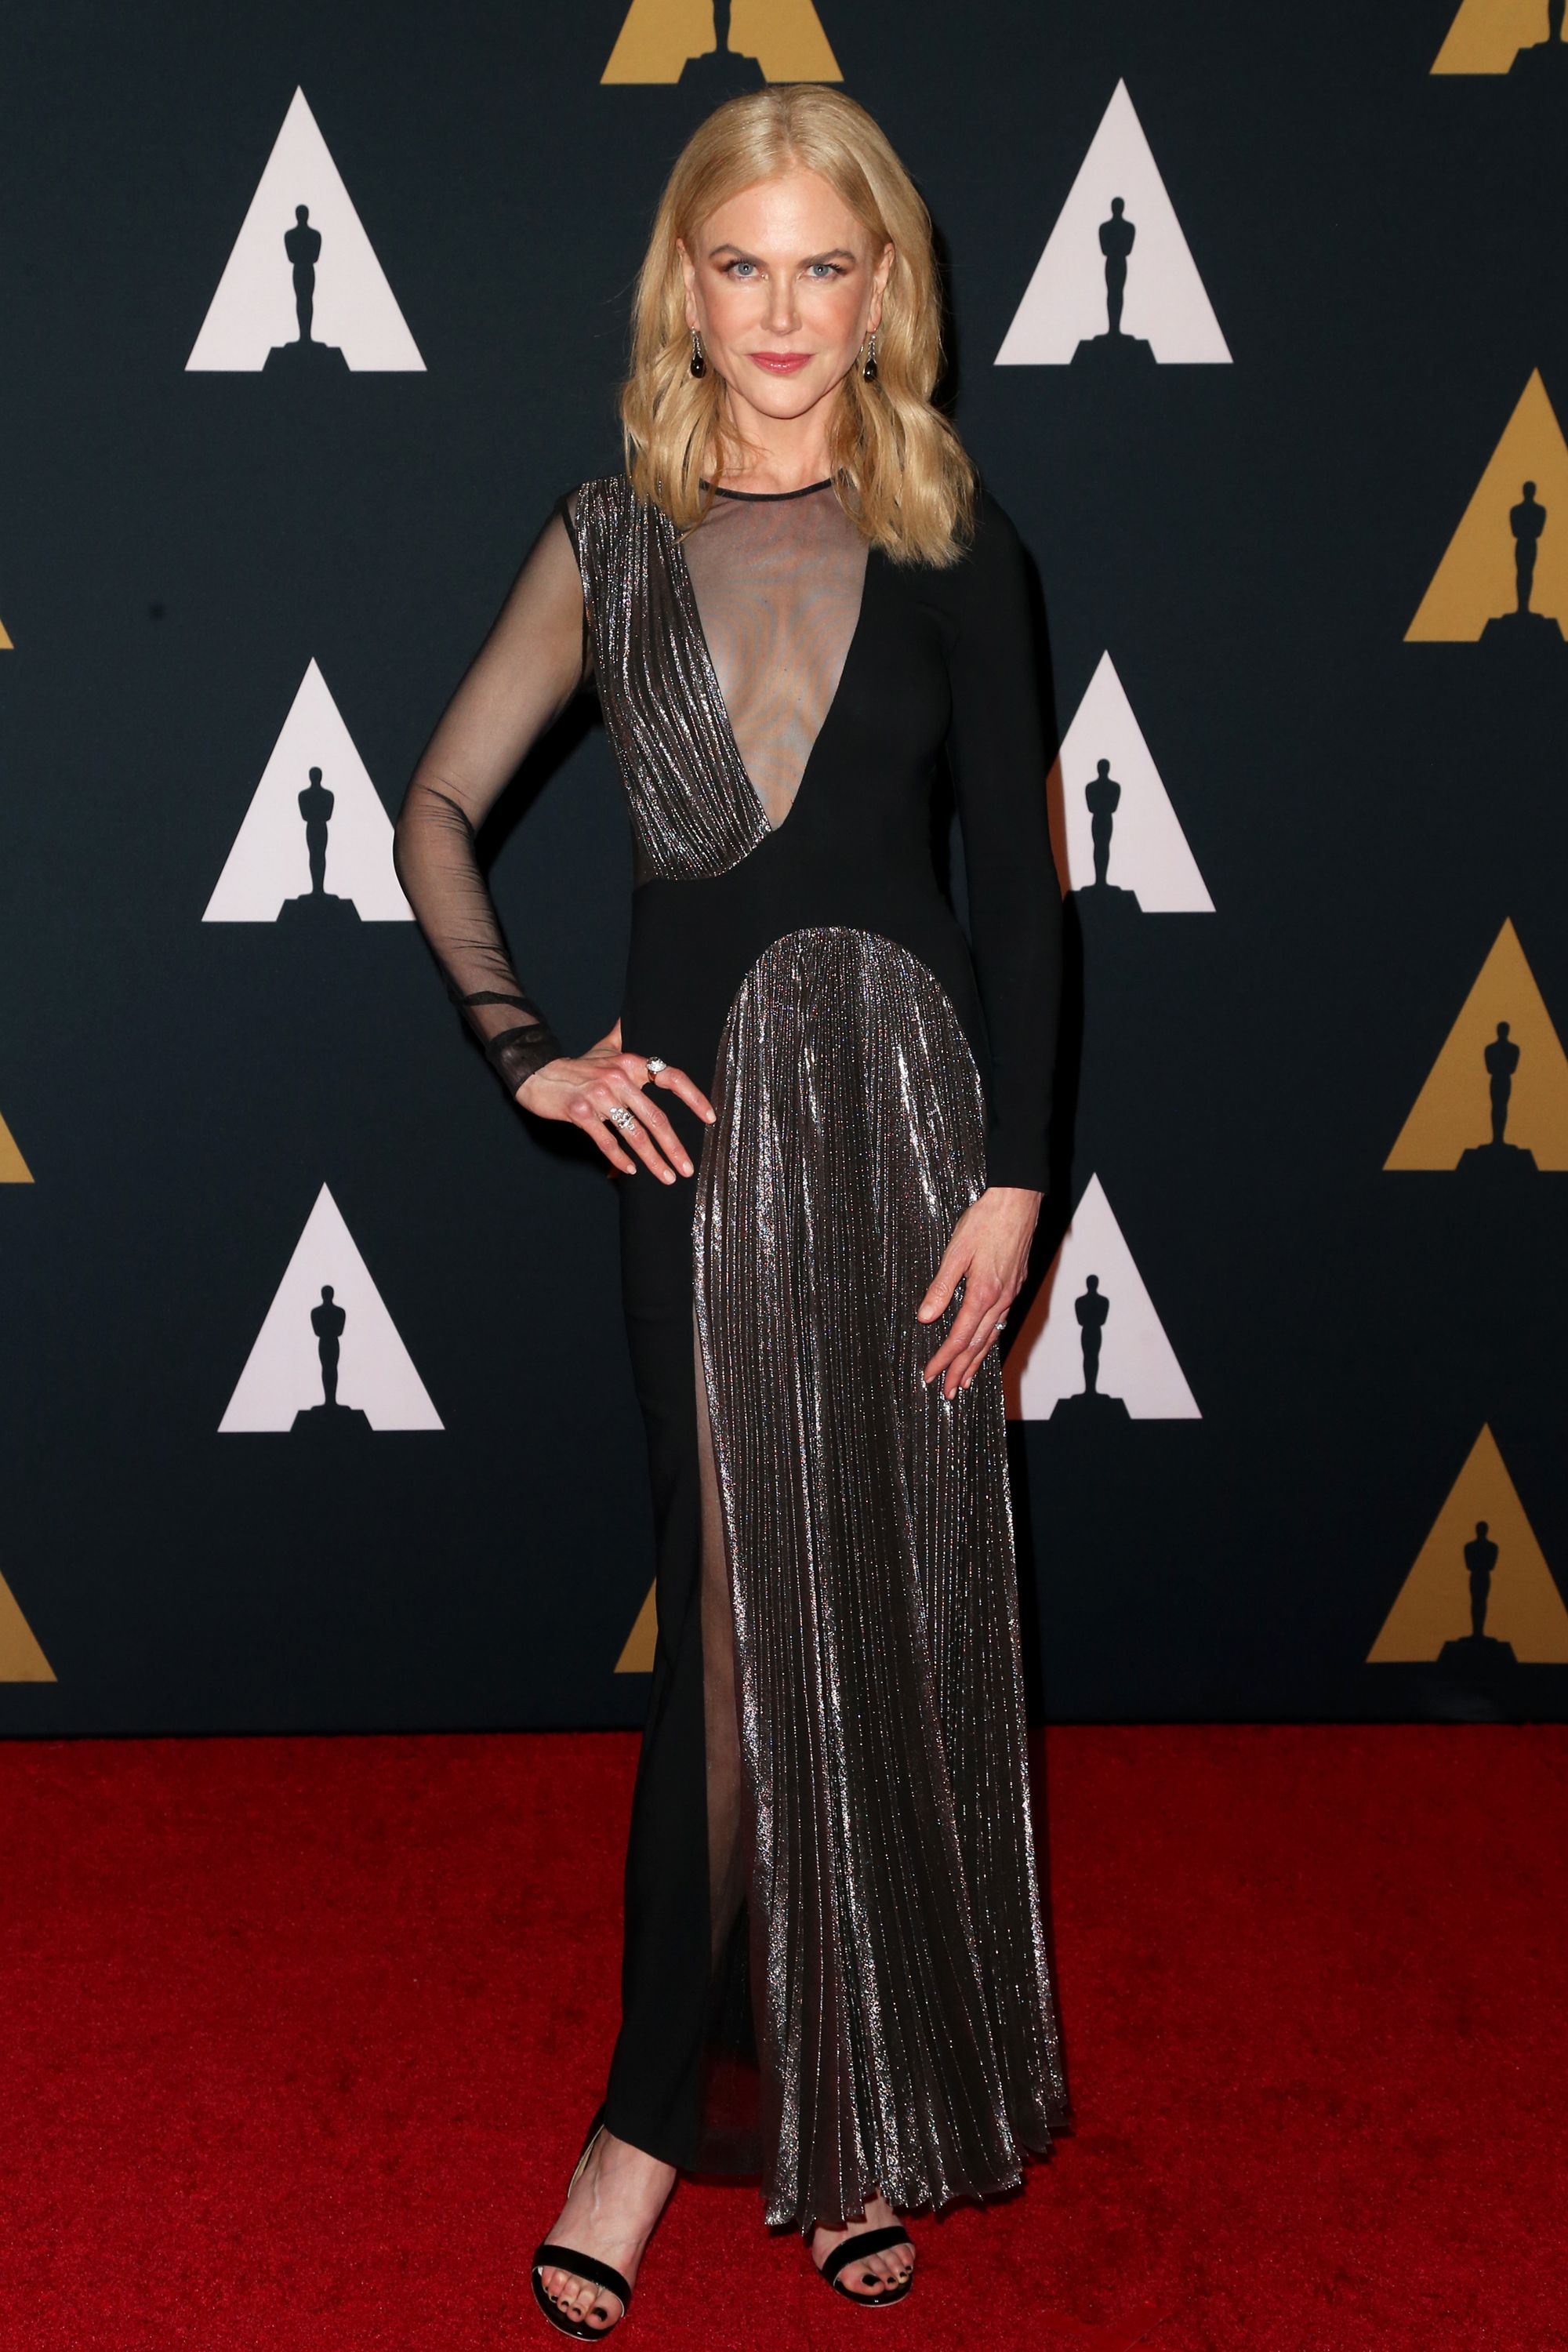 HOLLYWOOD, CA - NOVEMBER 12:  Actress Nicole Kidman attends the Academy of Motion Picture Arts and Sciences' 8th annual Governors Awards at The Ray Dolby Ballroom at Hollywood &amp&#x3B; Highland Center on November 12, 2016 in Hollywood, California.  (Photo by Frederick M. Brown/Getty Images)